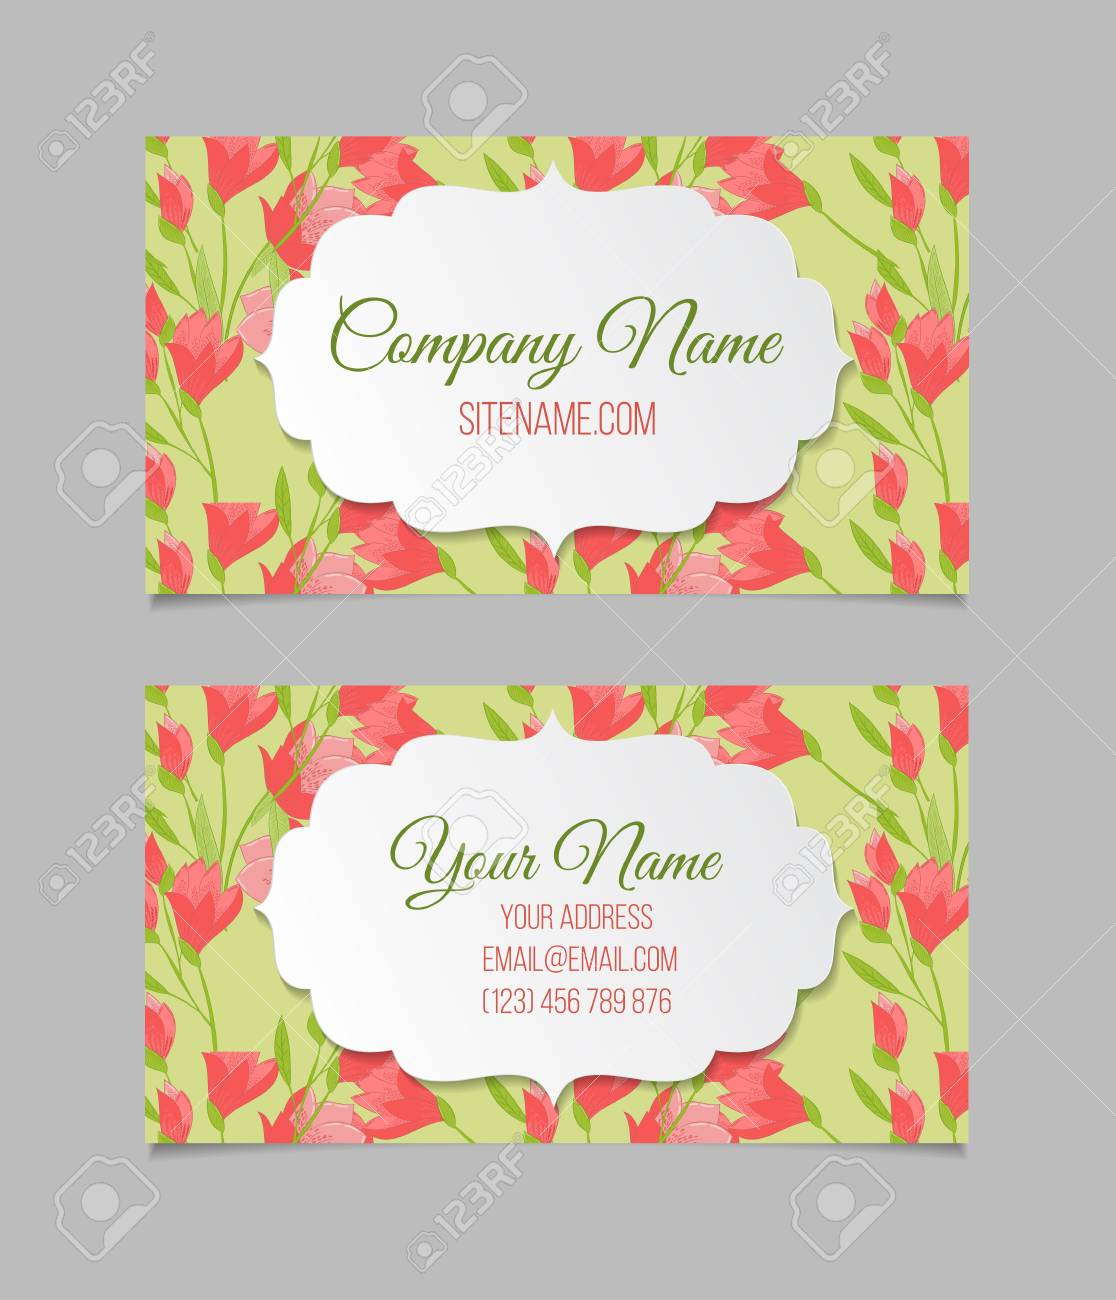 Double sided floral business card template with tulips royalty free double sided floral business card template with tulips stock vector 51880445 accmission Choice Image